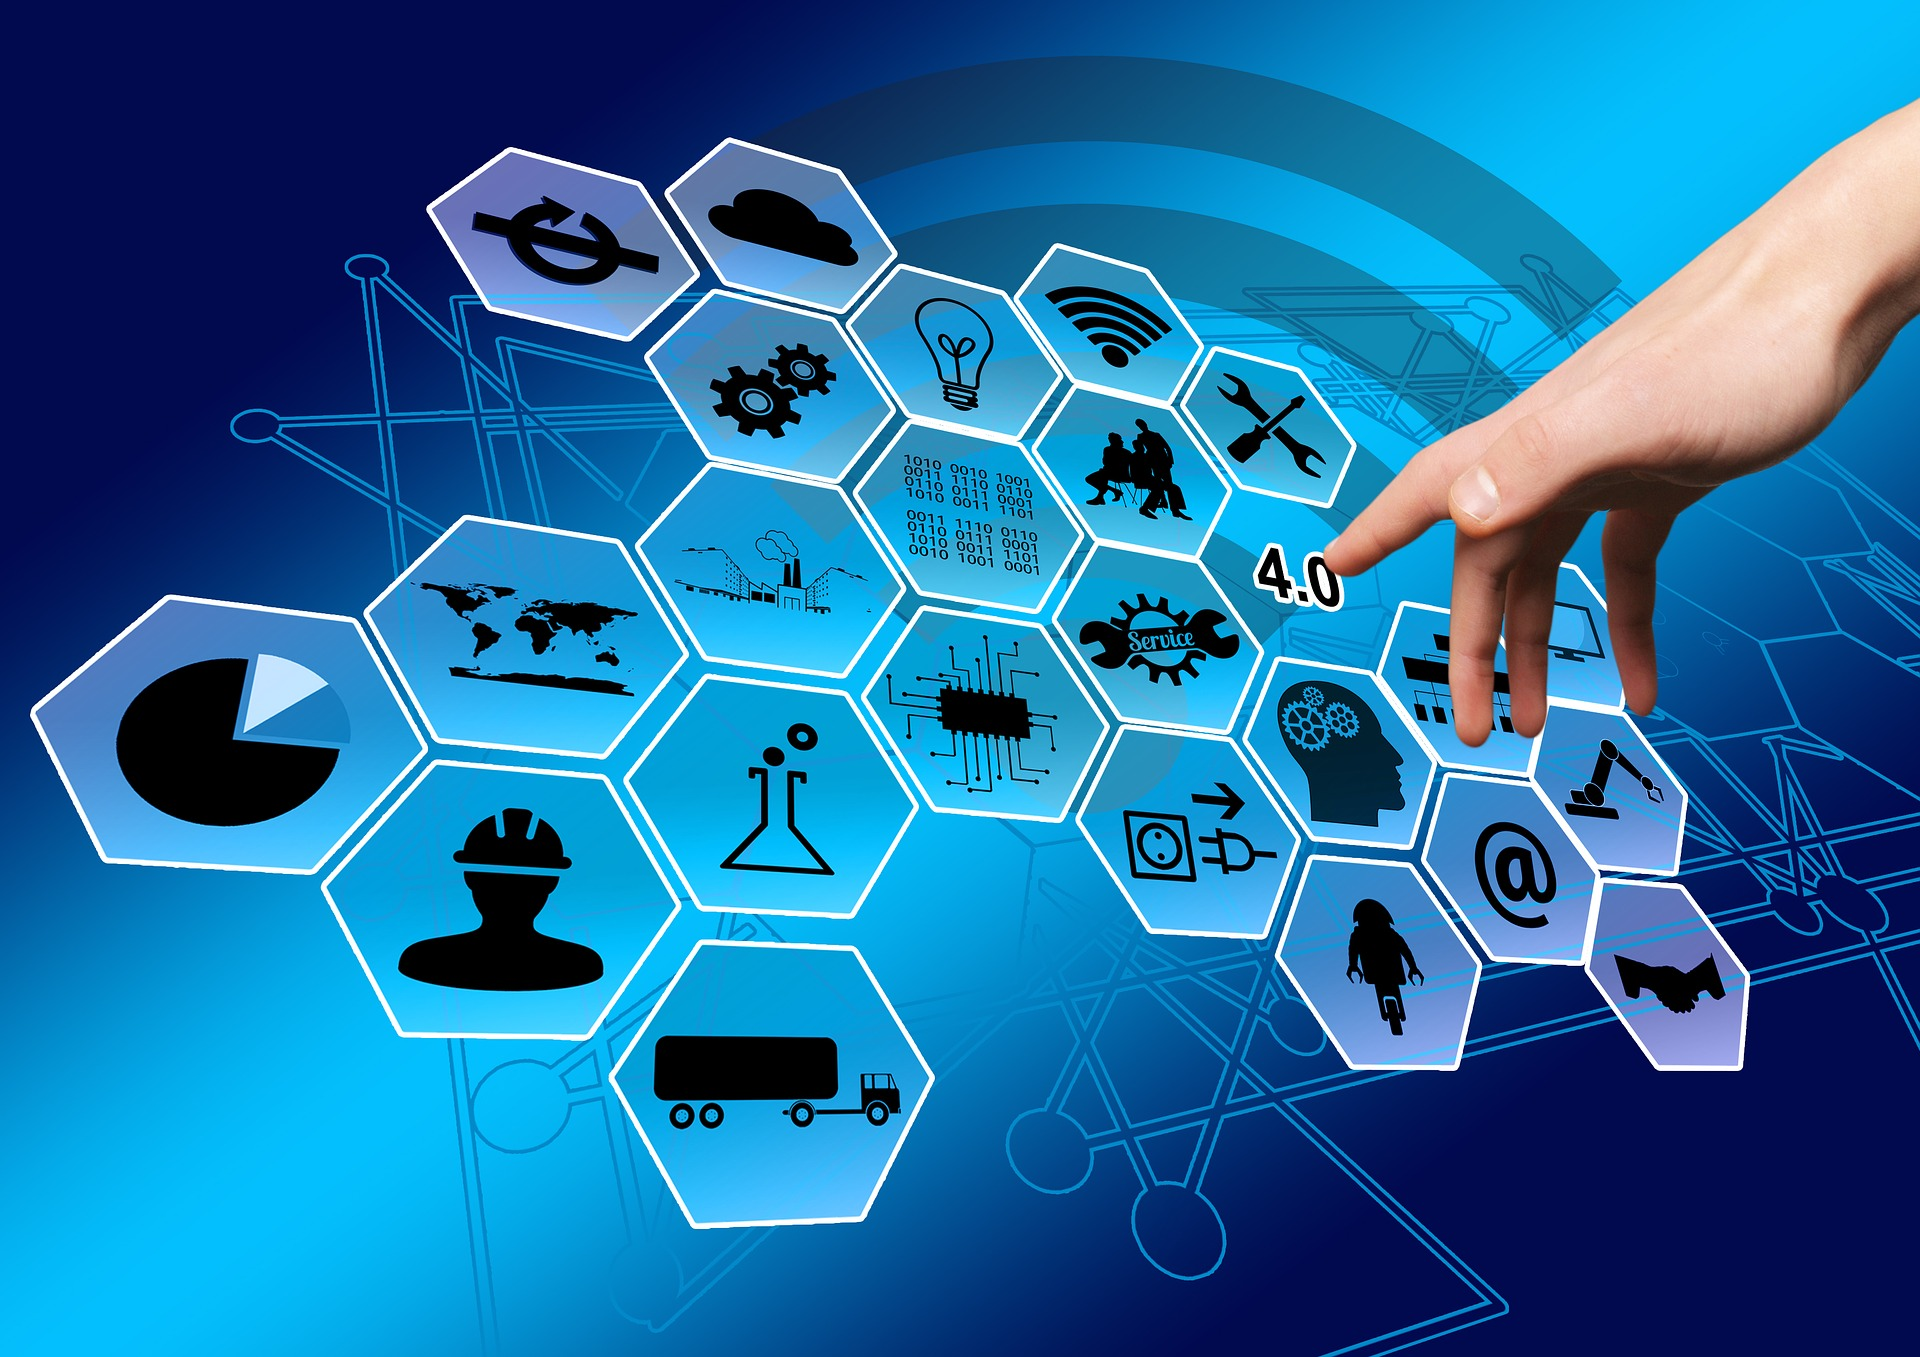 Nearly 30% of businesses worldwide have at least limited IoT deployments, by Strategy Analytics' count - image courtesy of Pixabay